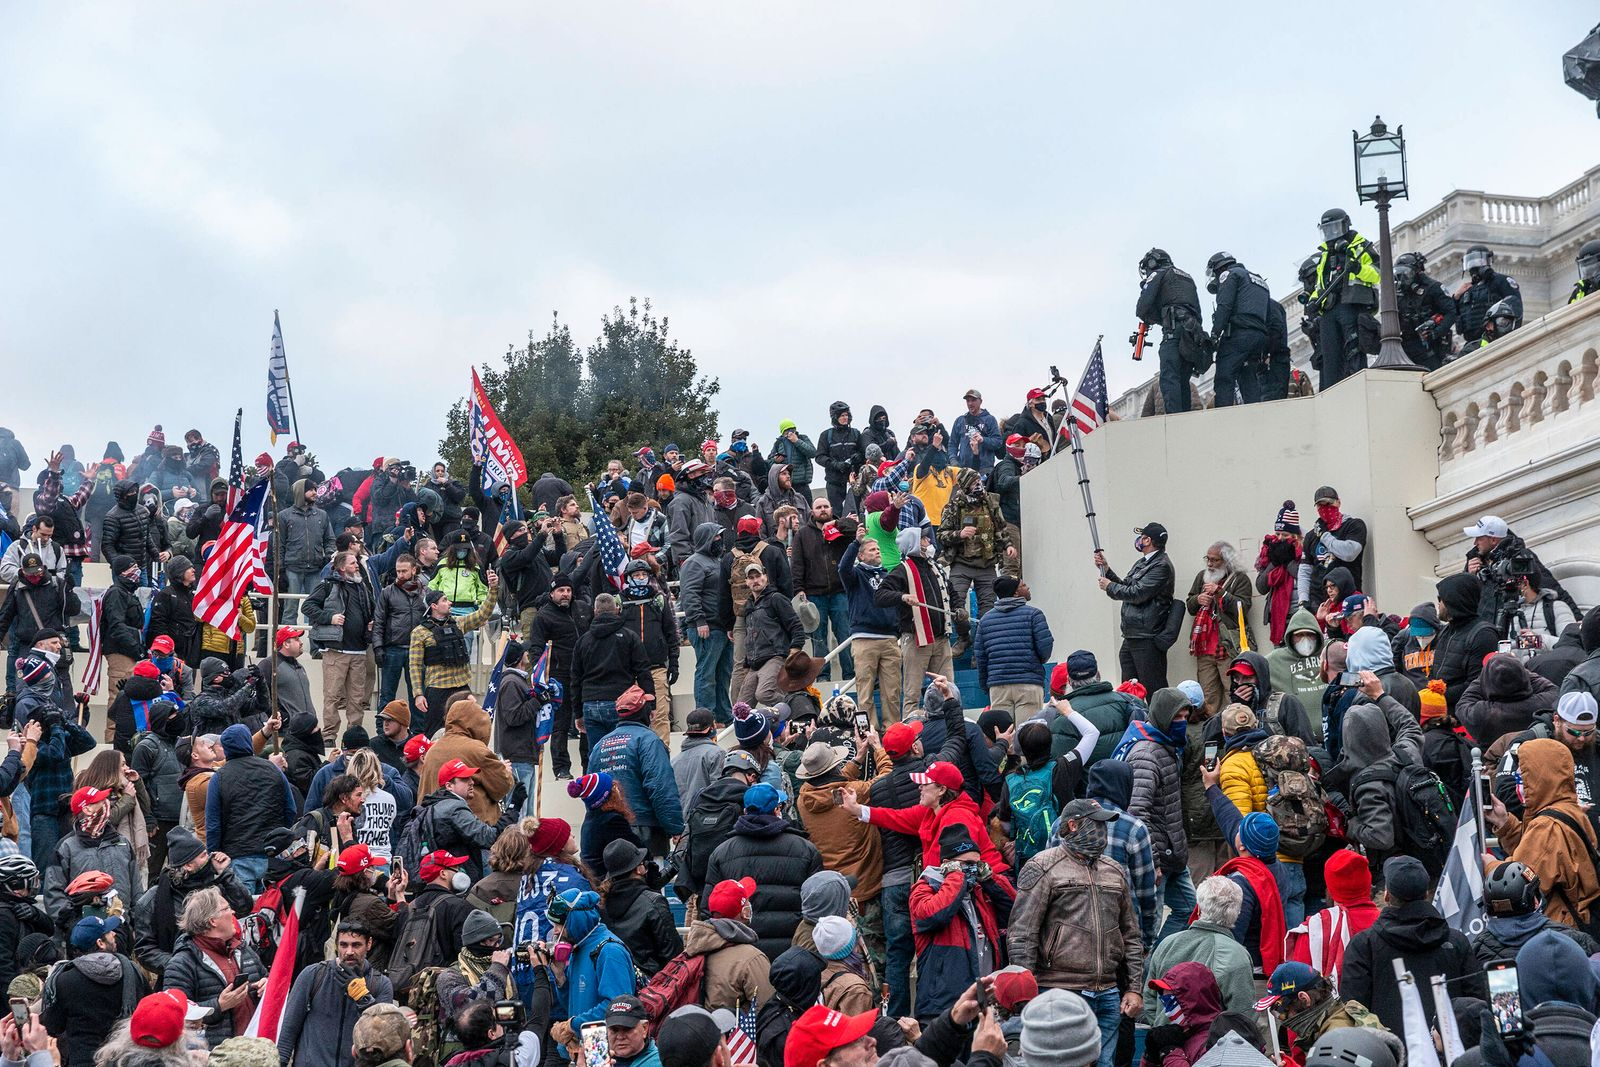 Pro-Trump Riot in Washington DC Protesters seen all over Capitol building where pro-Trump supporters riot and breached